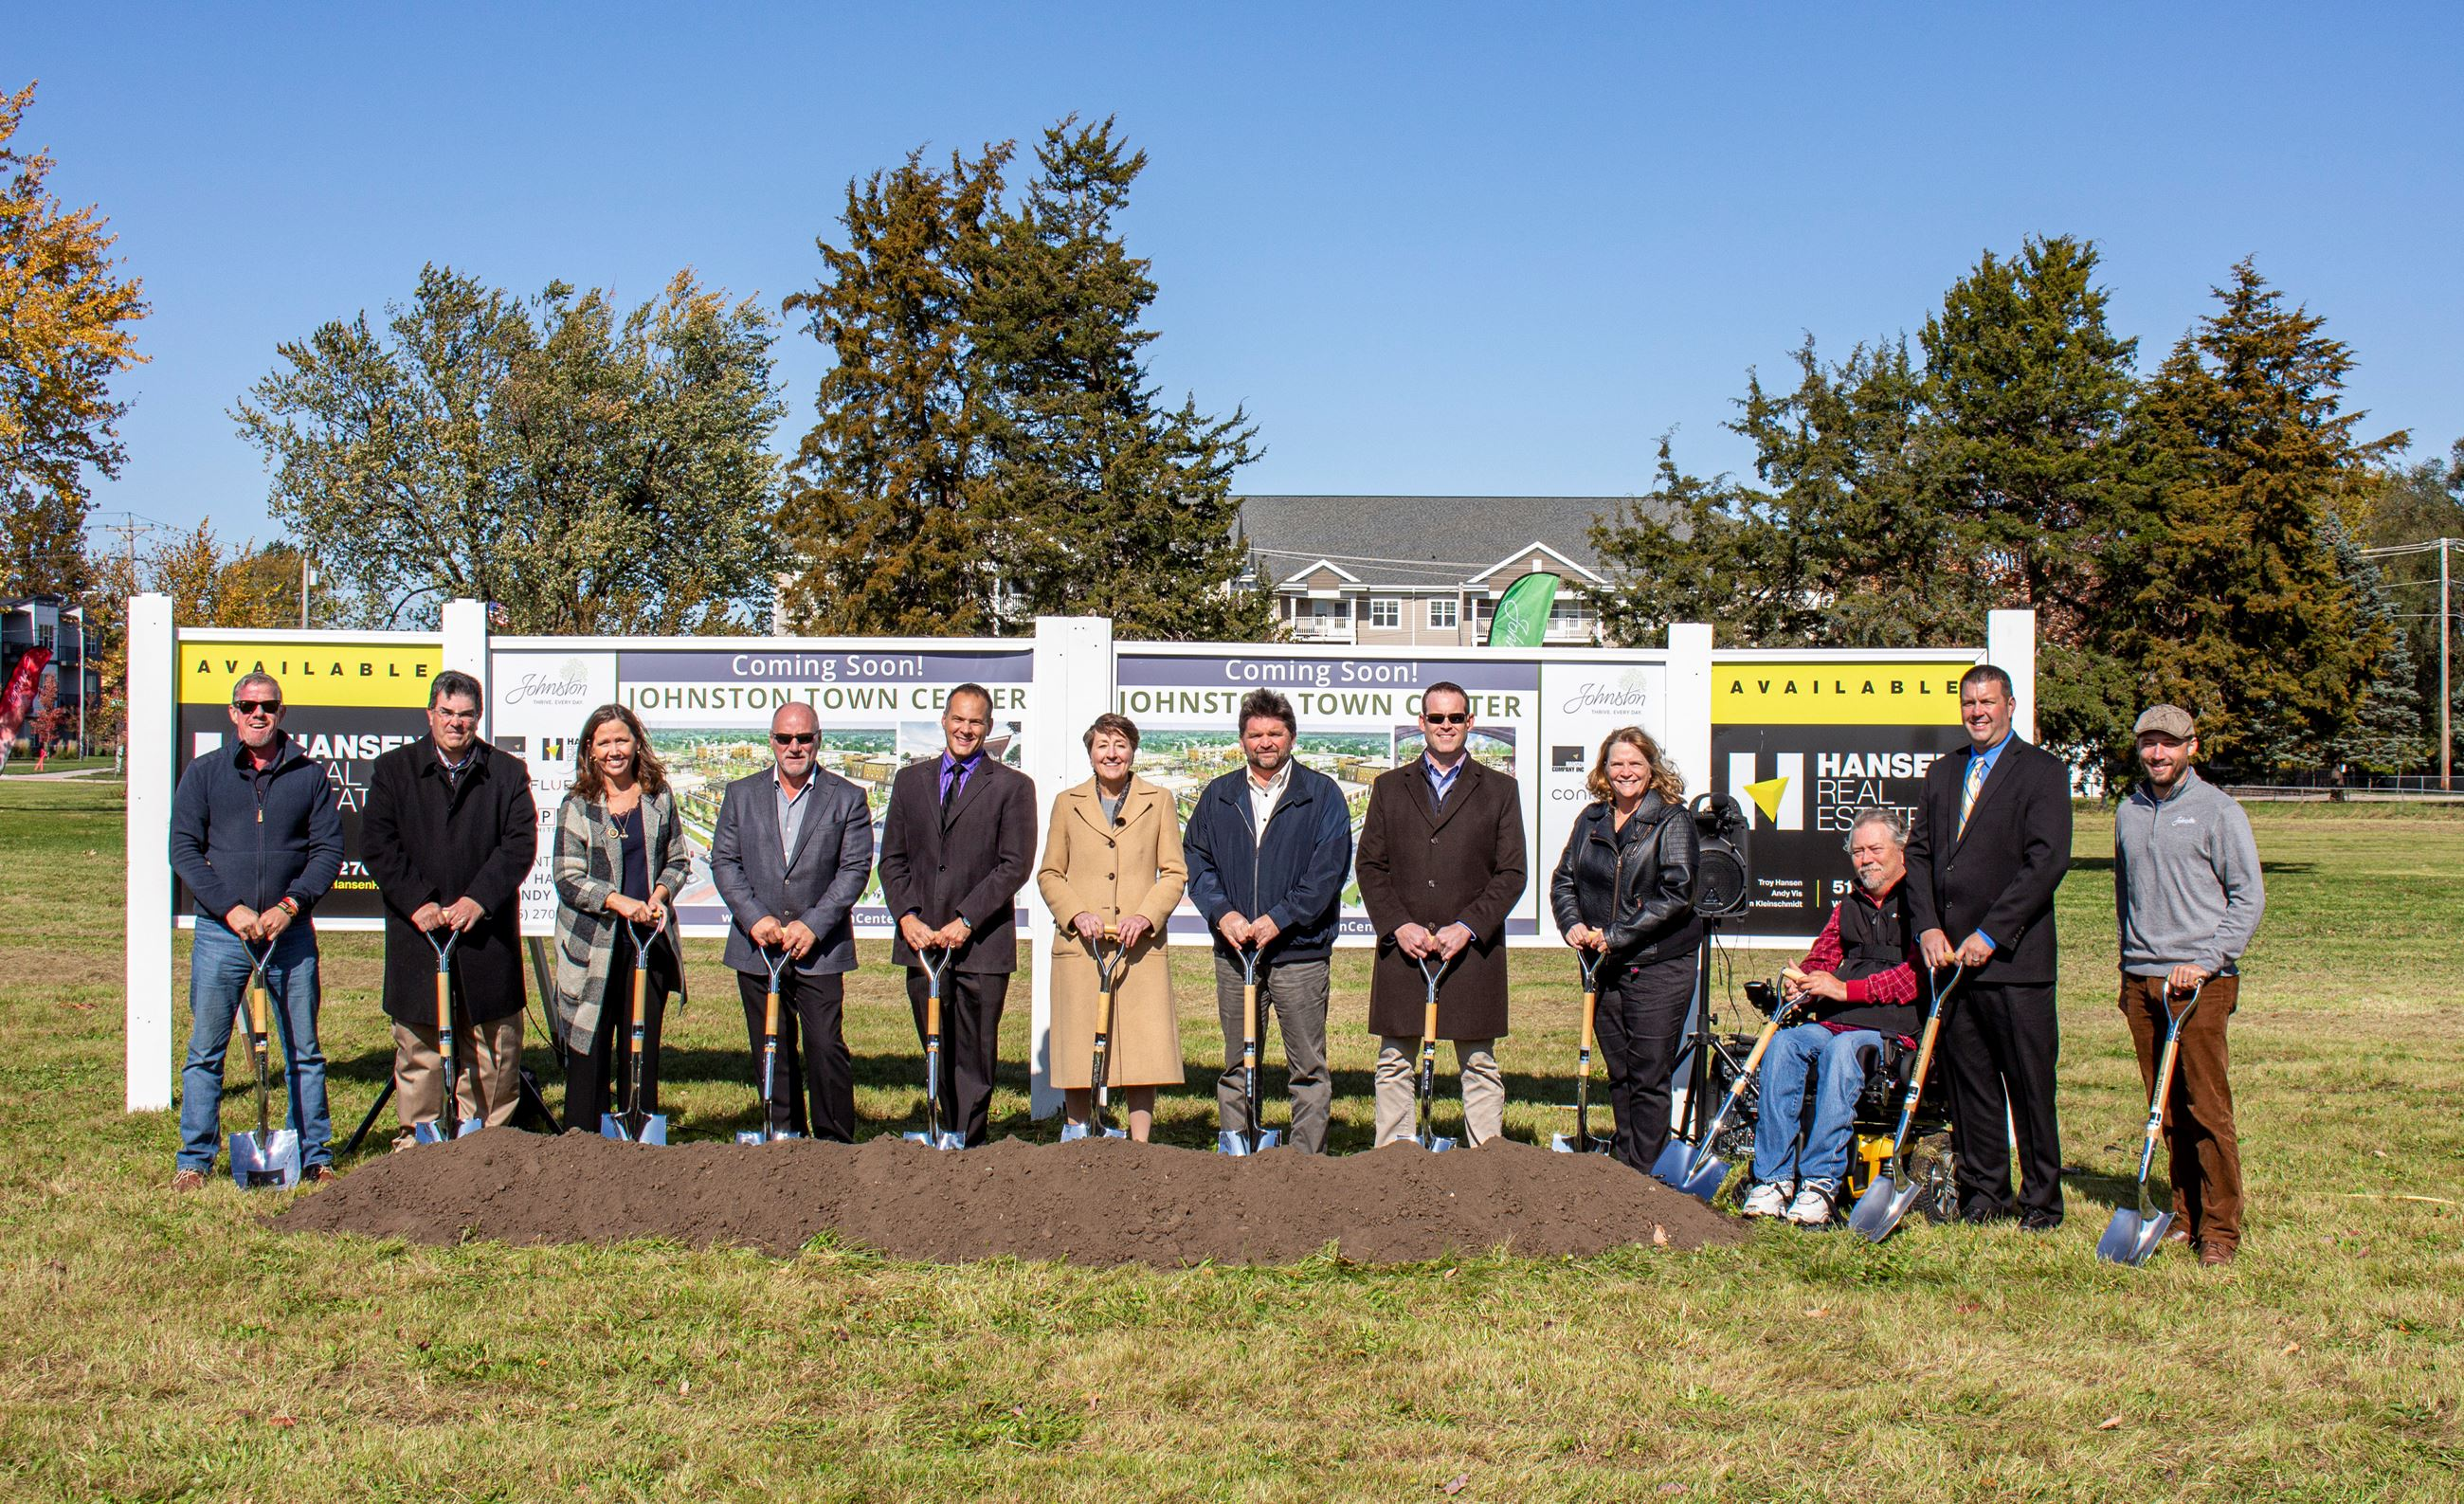 1. Johnston Town Center Groundbreaking_Oct. 2019